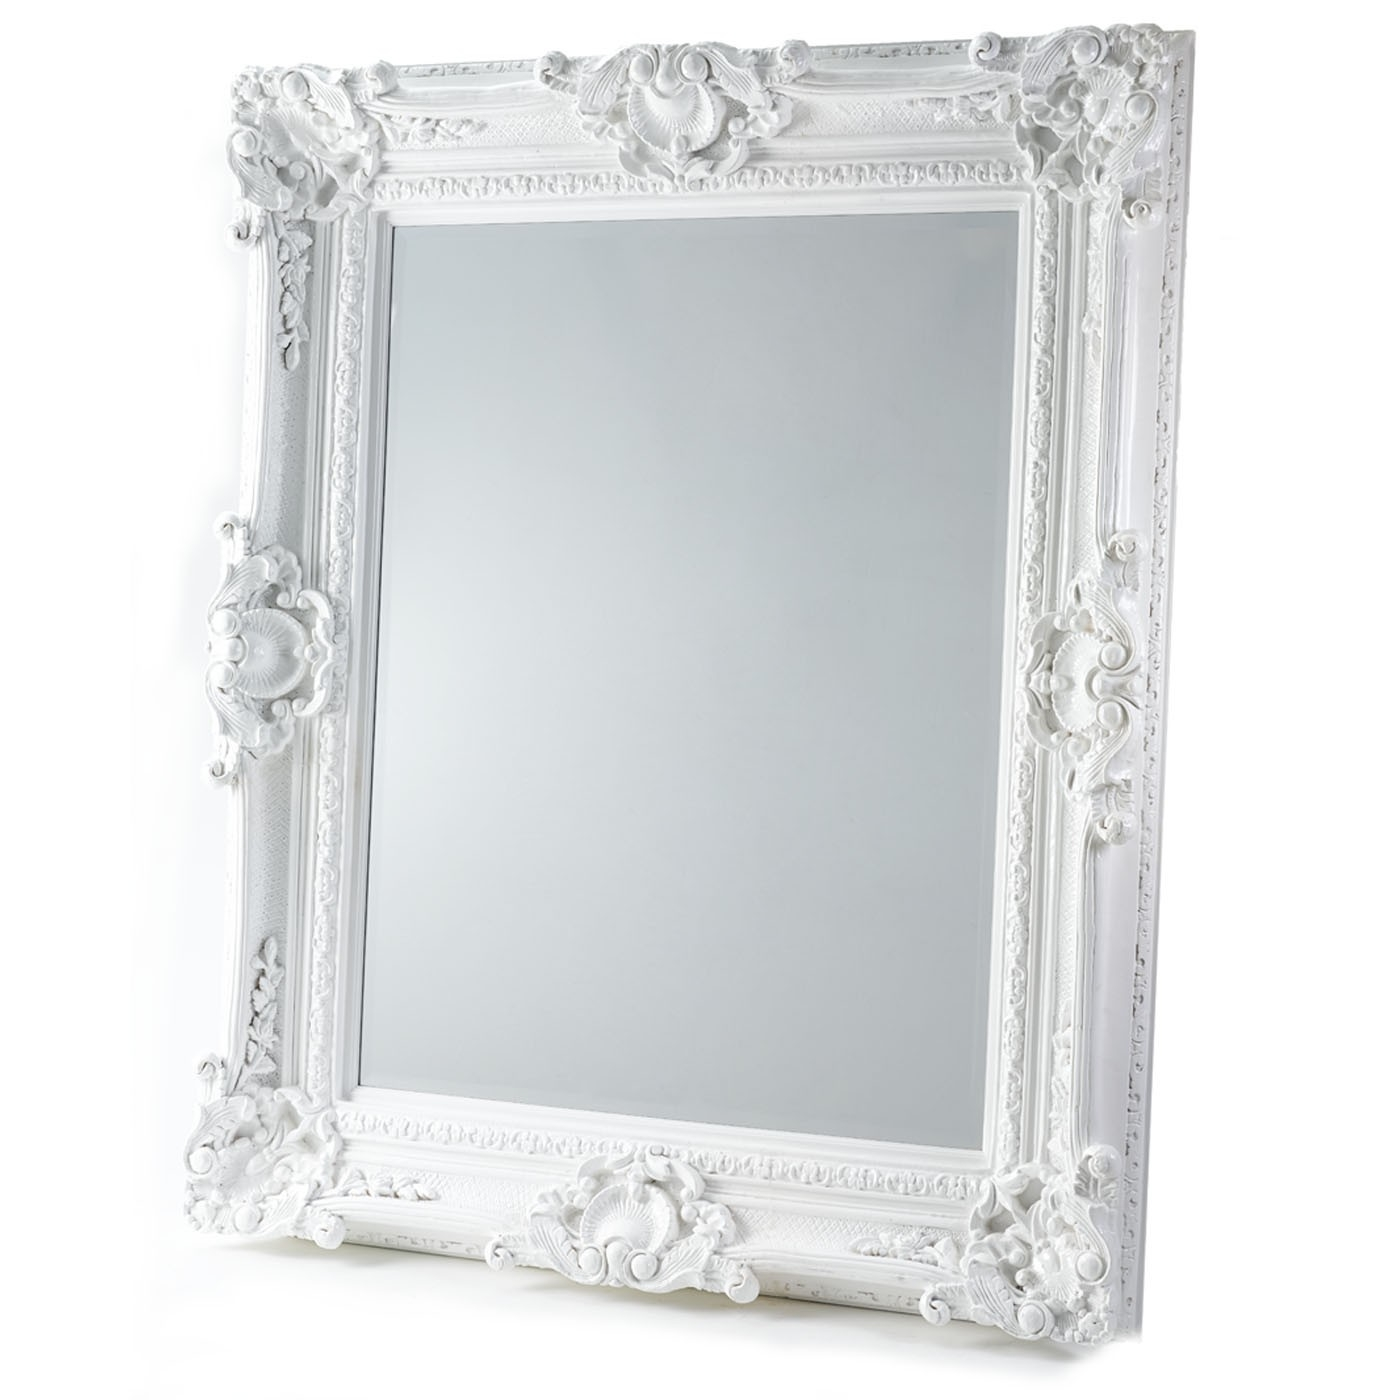 Featured Image of Baroque White Mirror